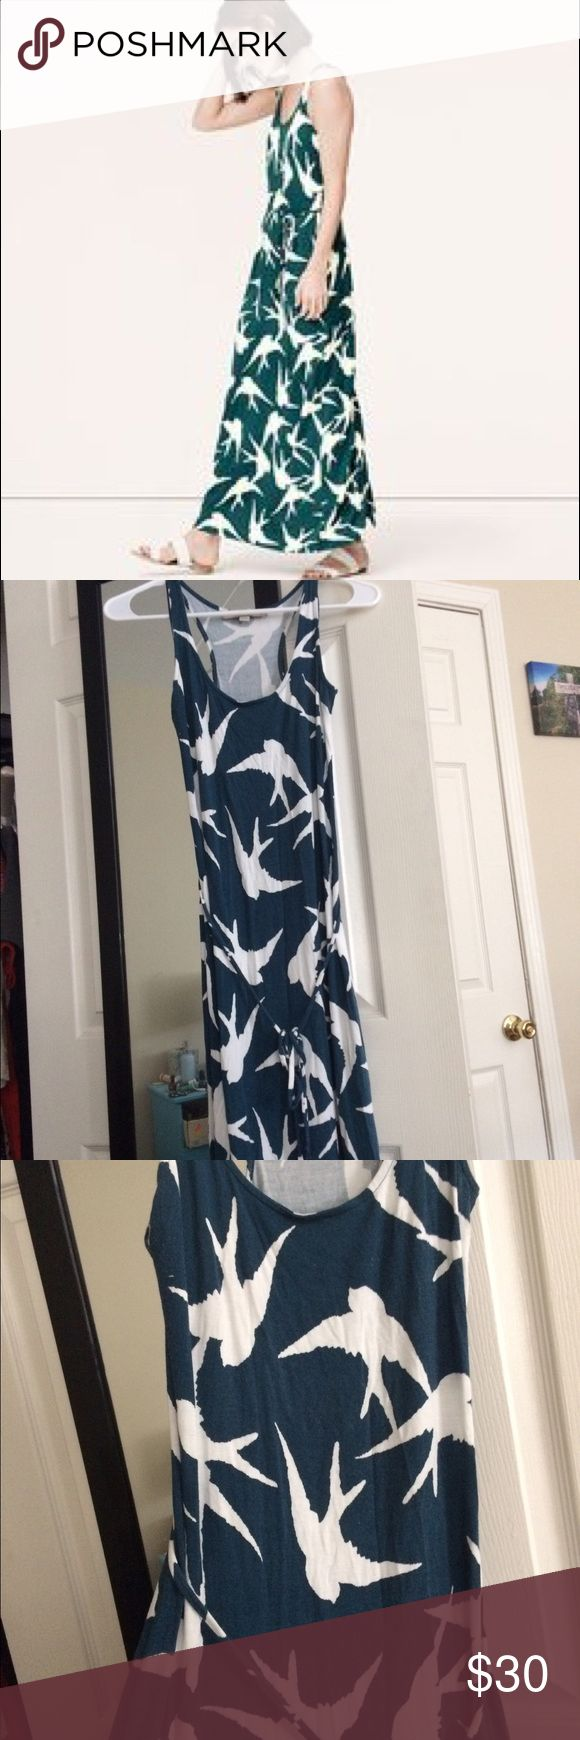 LOFT Swallow Bird Patterned Maxi Dress - Petite You will want to LIVE in this jersey maxi dress--so effortlessly chic and comfy.  Real with white bird pattern, the dress includes a removable tie at the waist.  EUC, only worn a couple of times.  All offers considered! LOFT Dresses Maxi